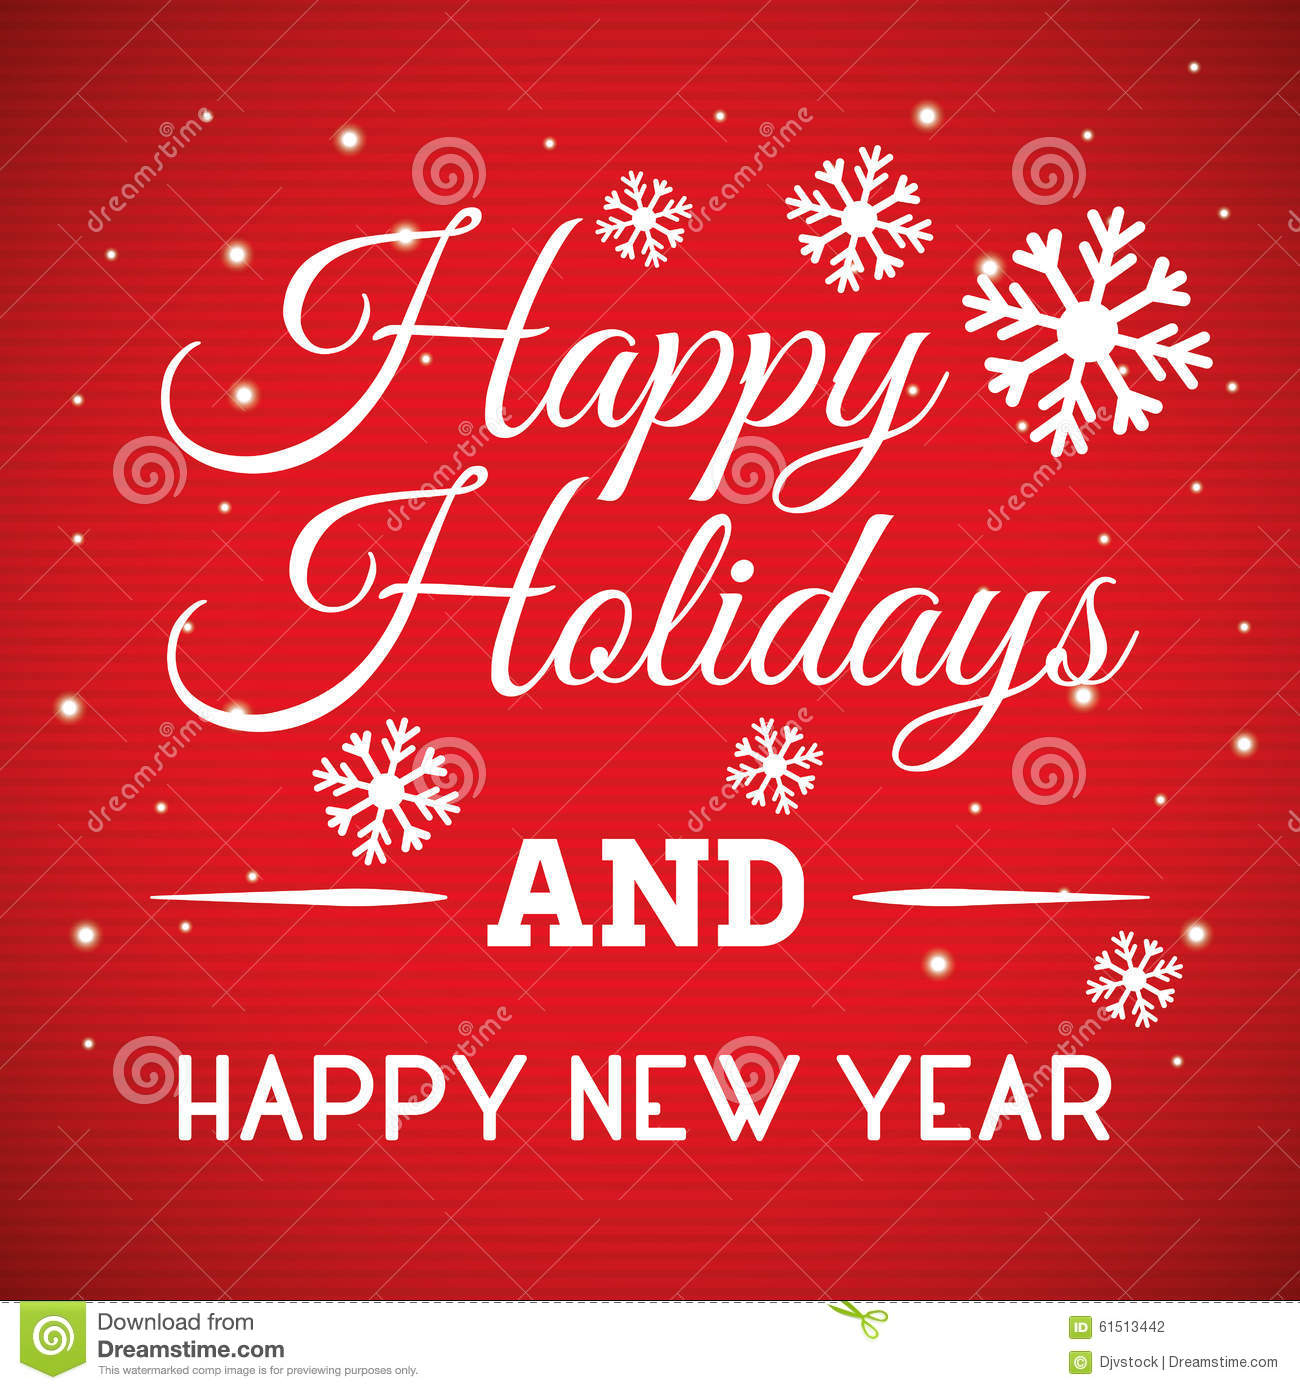 Happy Holidays And Merry Christmas Card Stock Vector - Image: 61513442